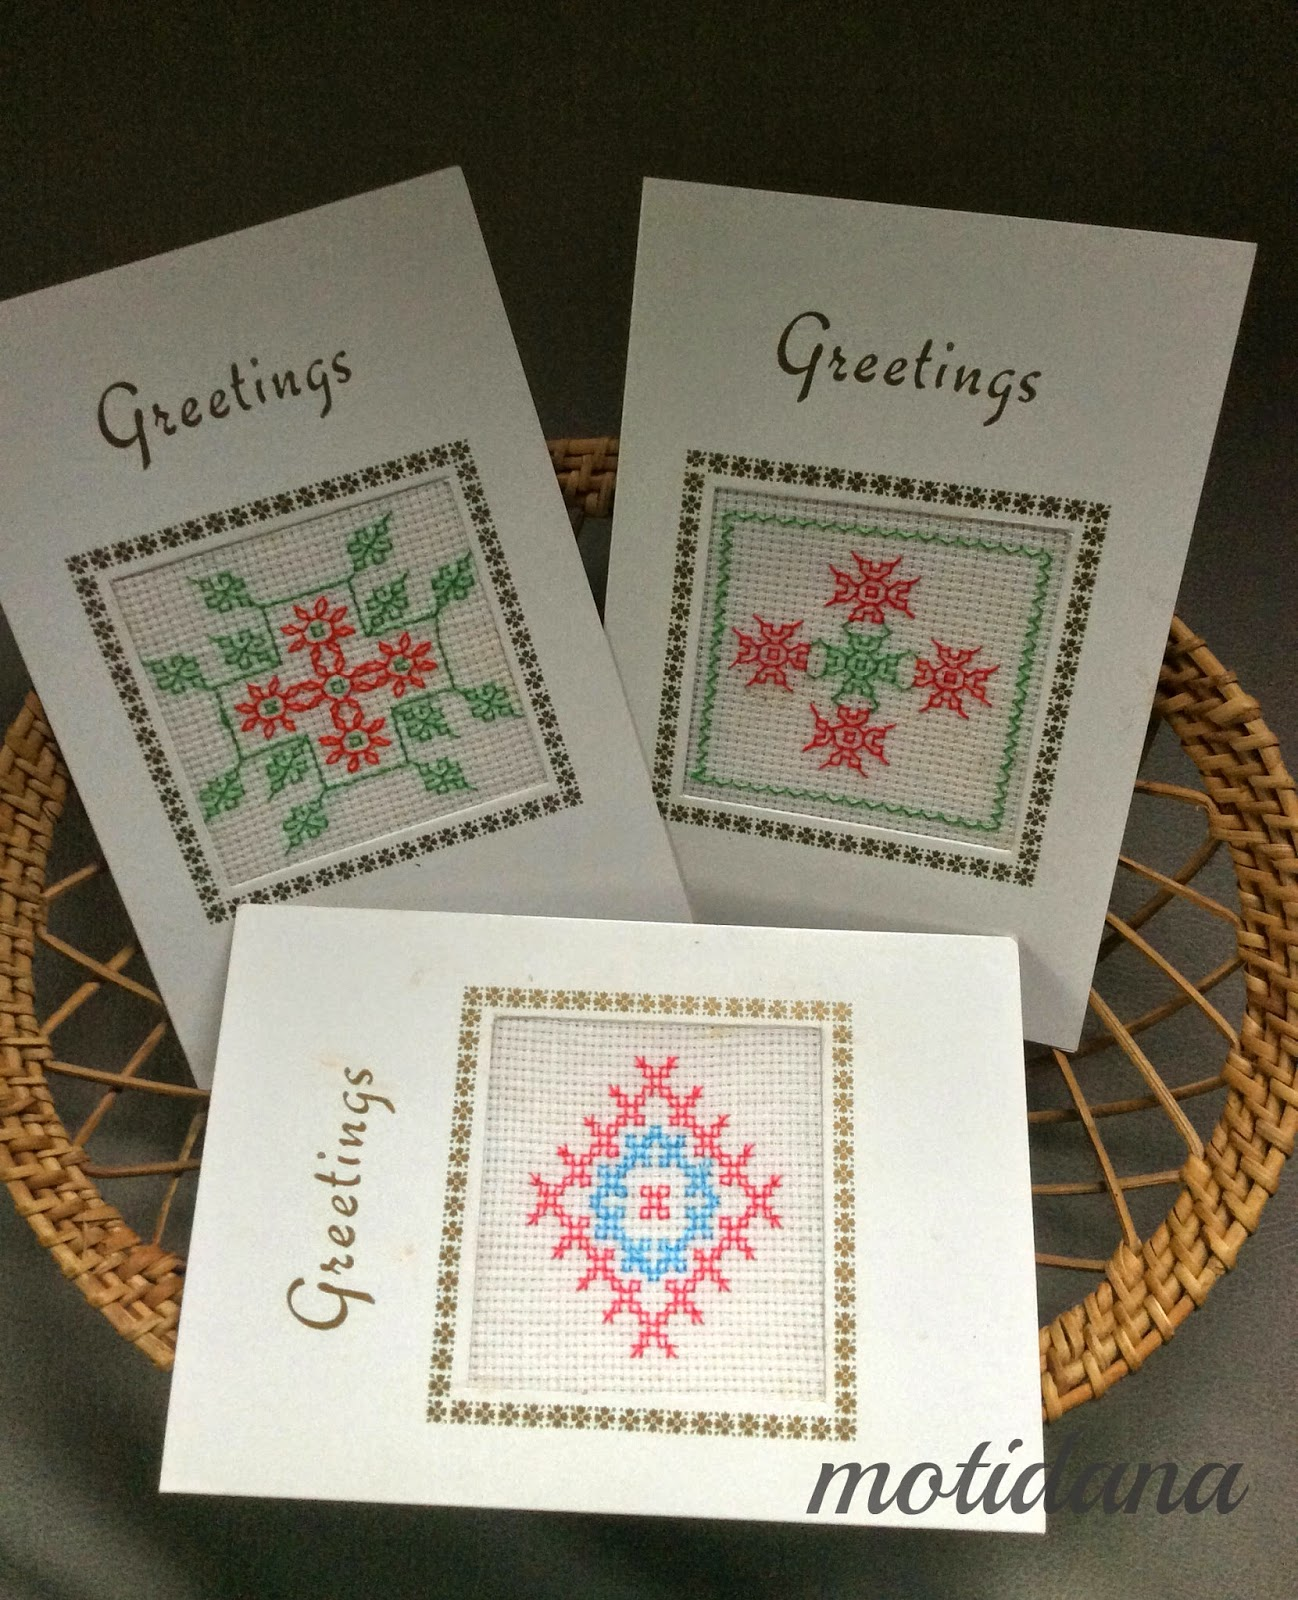 diwali greetings , hand embroidery from India